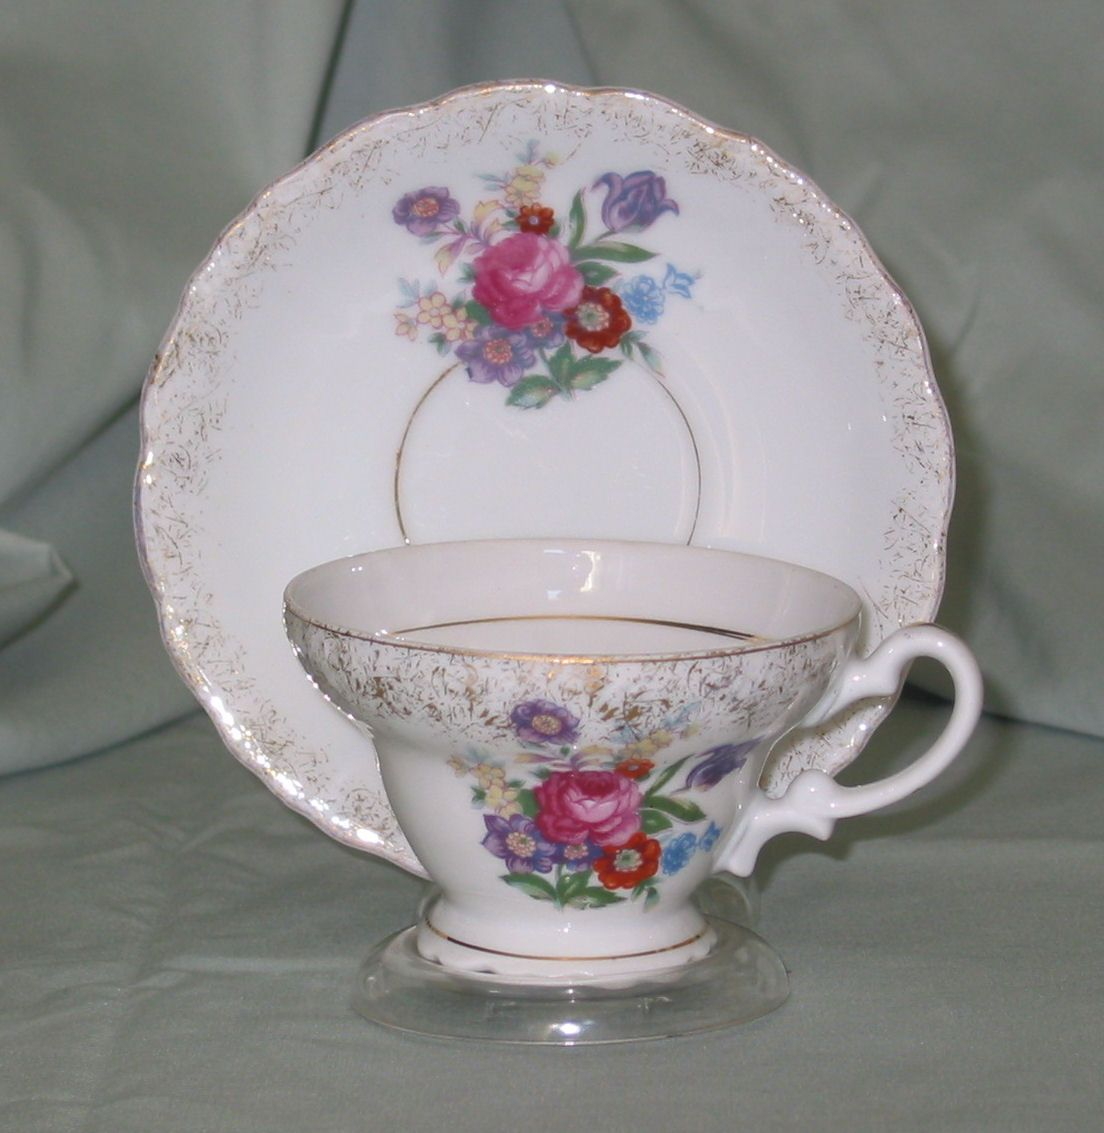 Bone China, Floral with Gold Trim, no marks, unknown maker